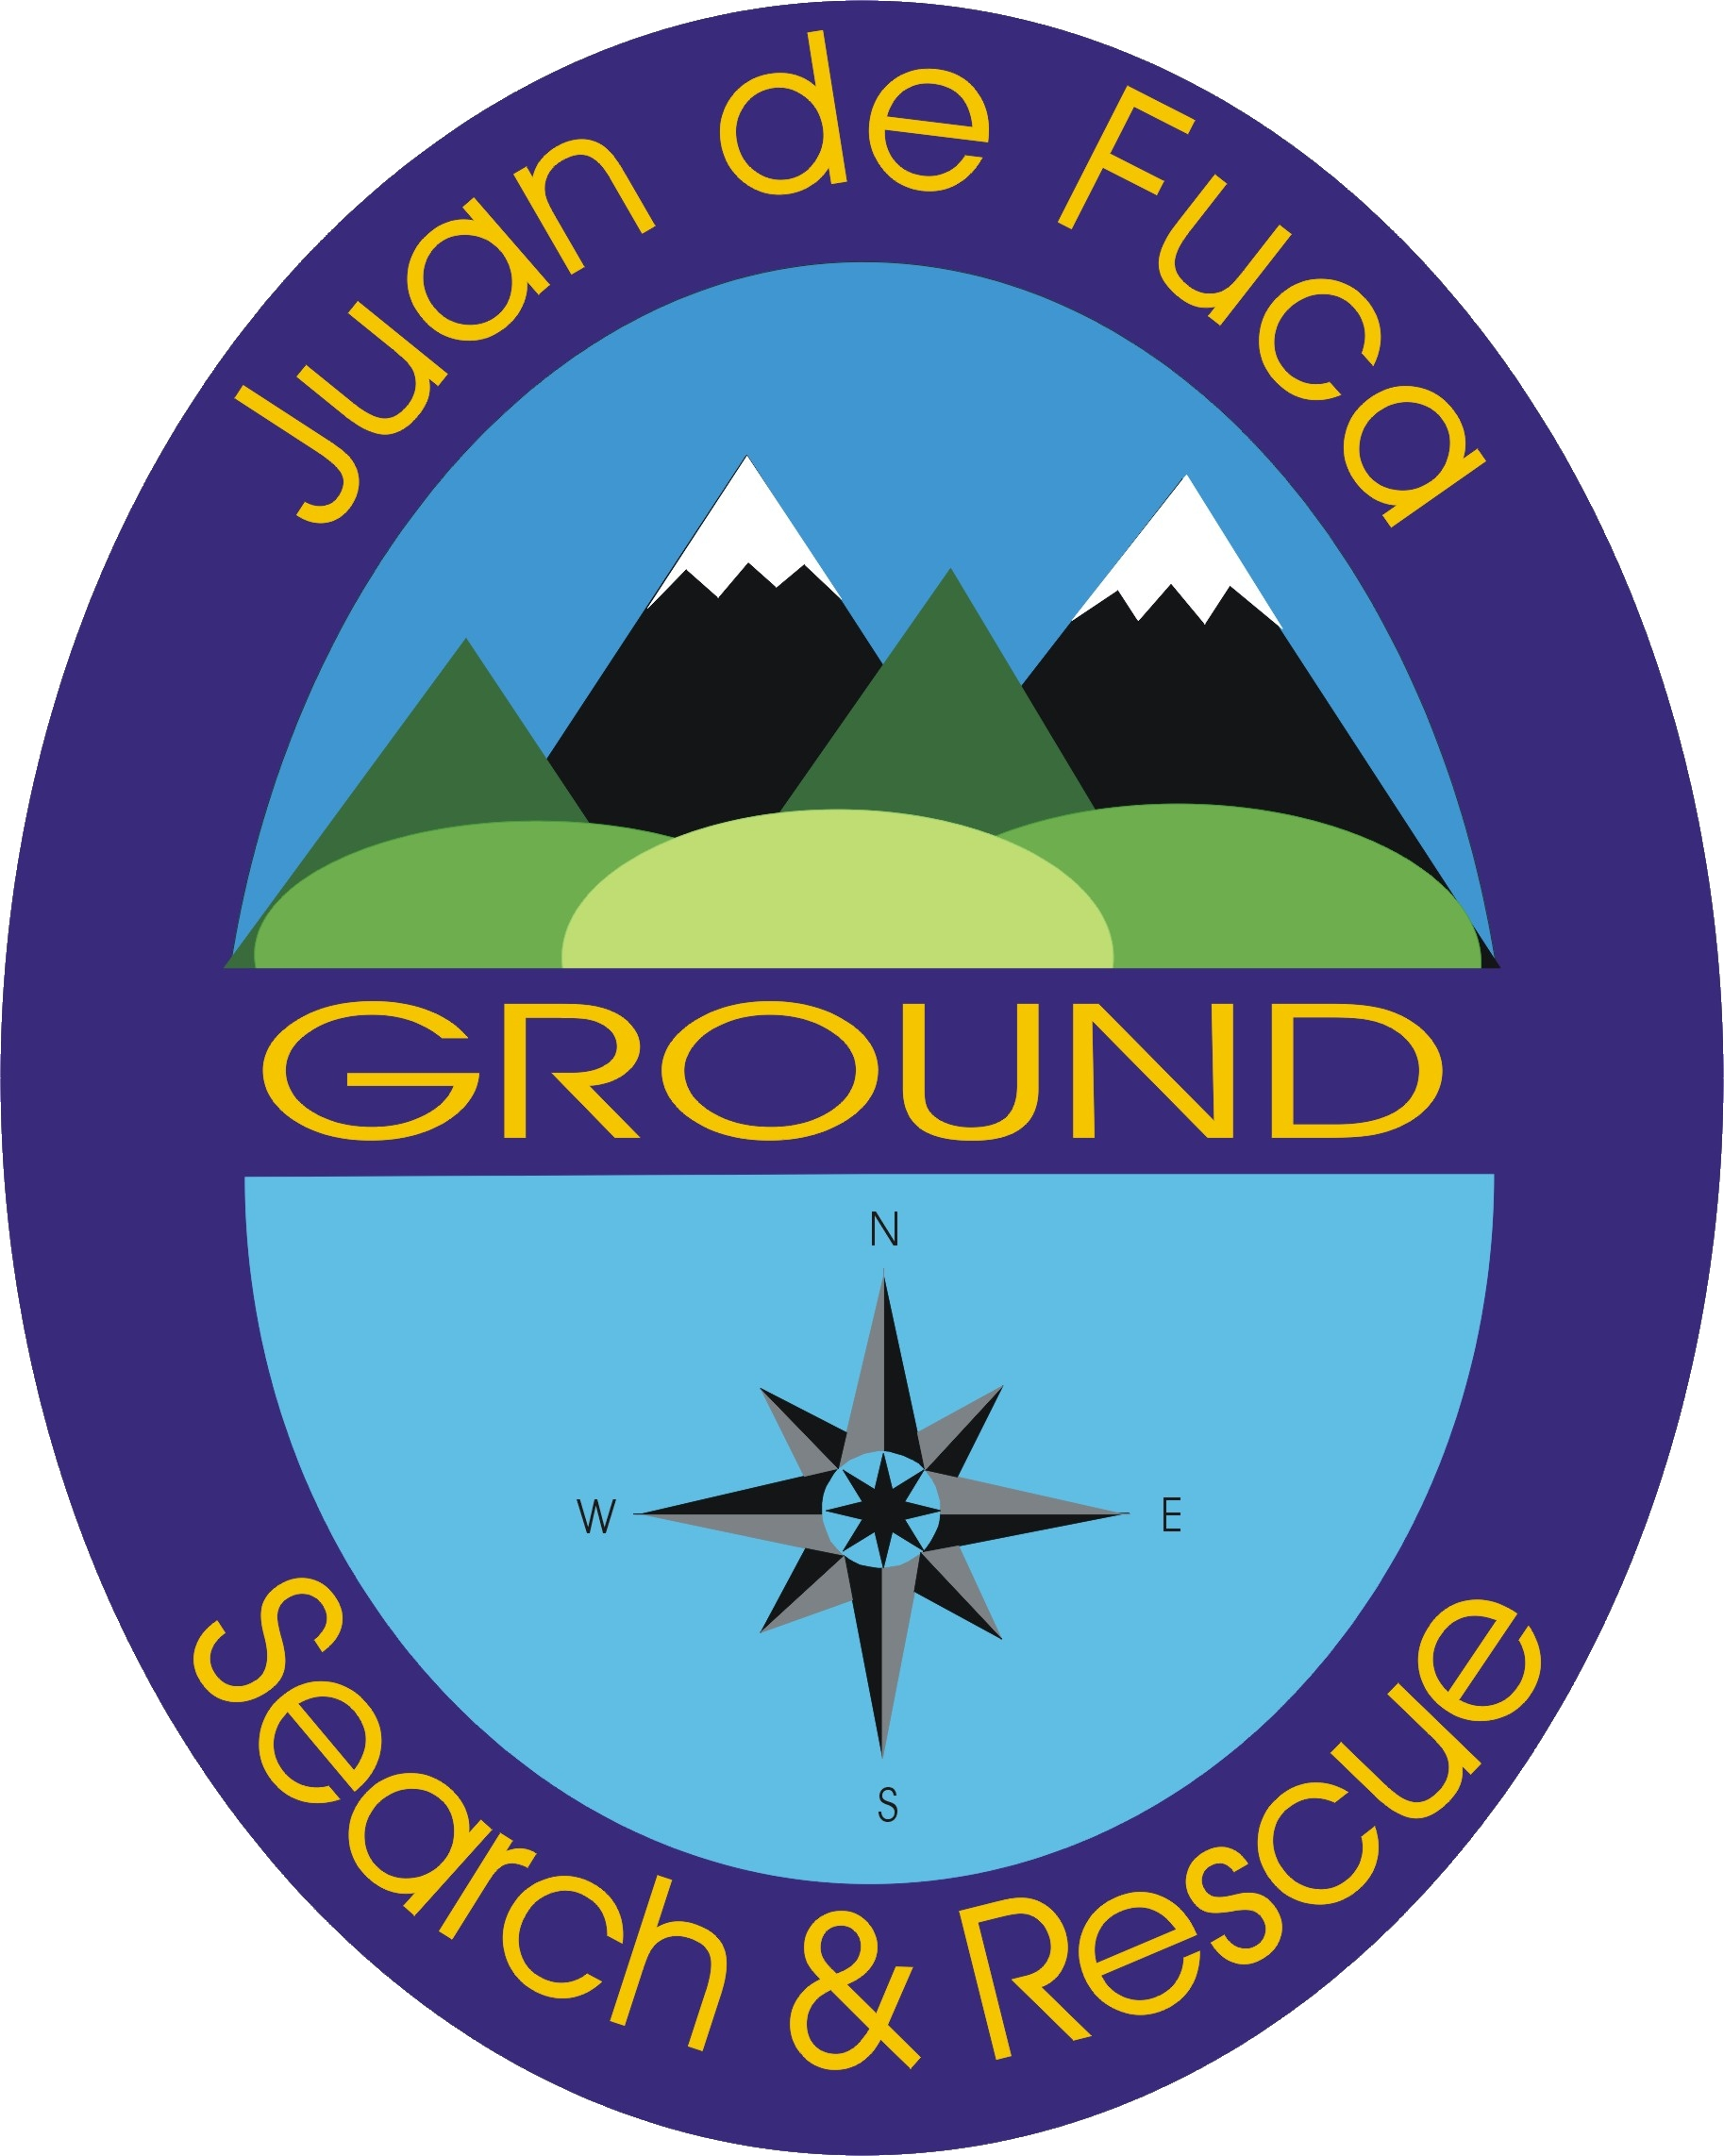 Juan de Fuca Search and Rescue